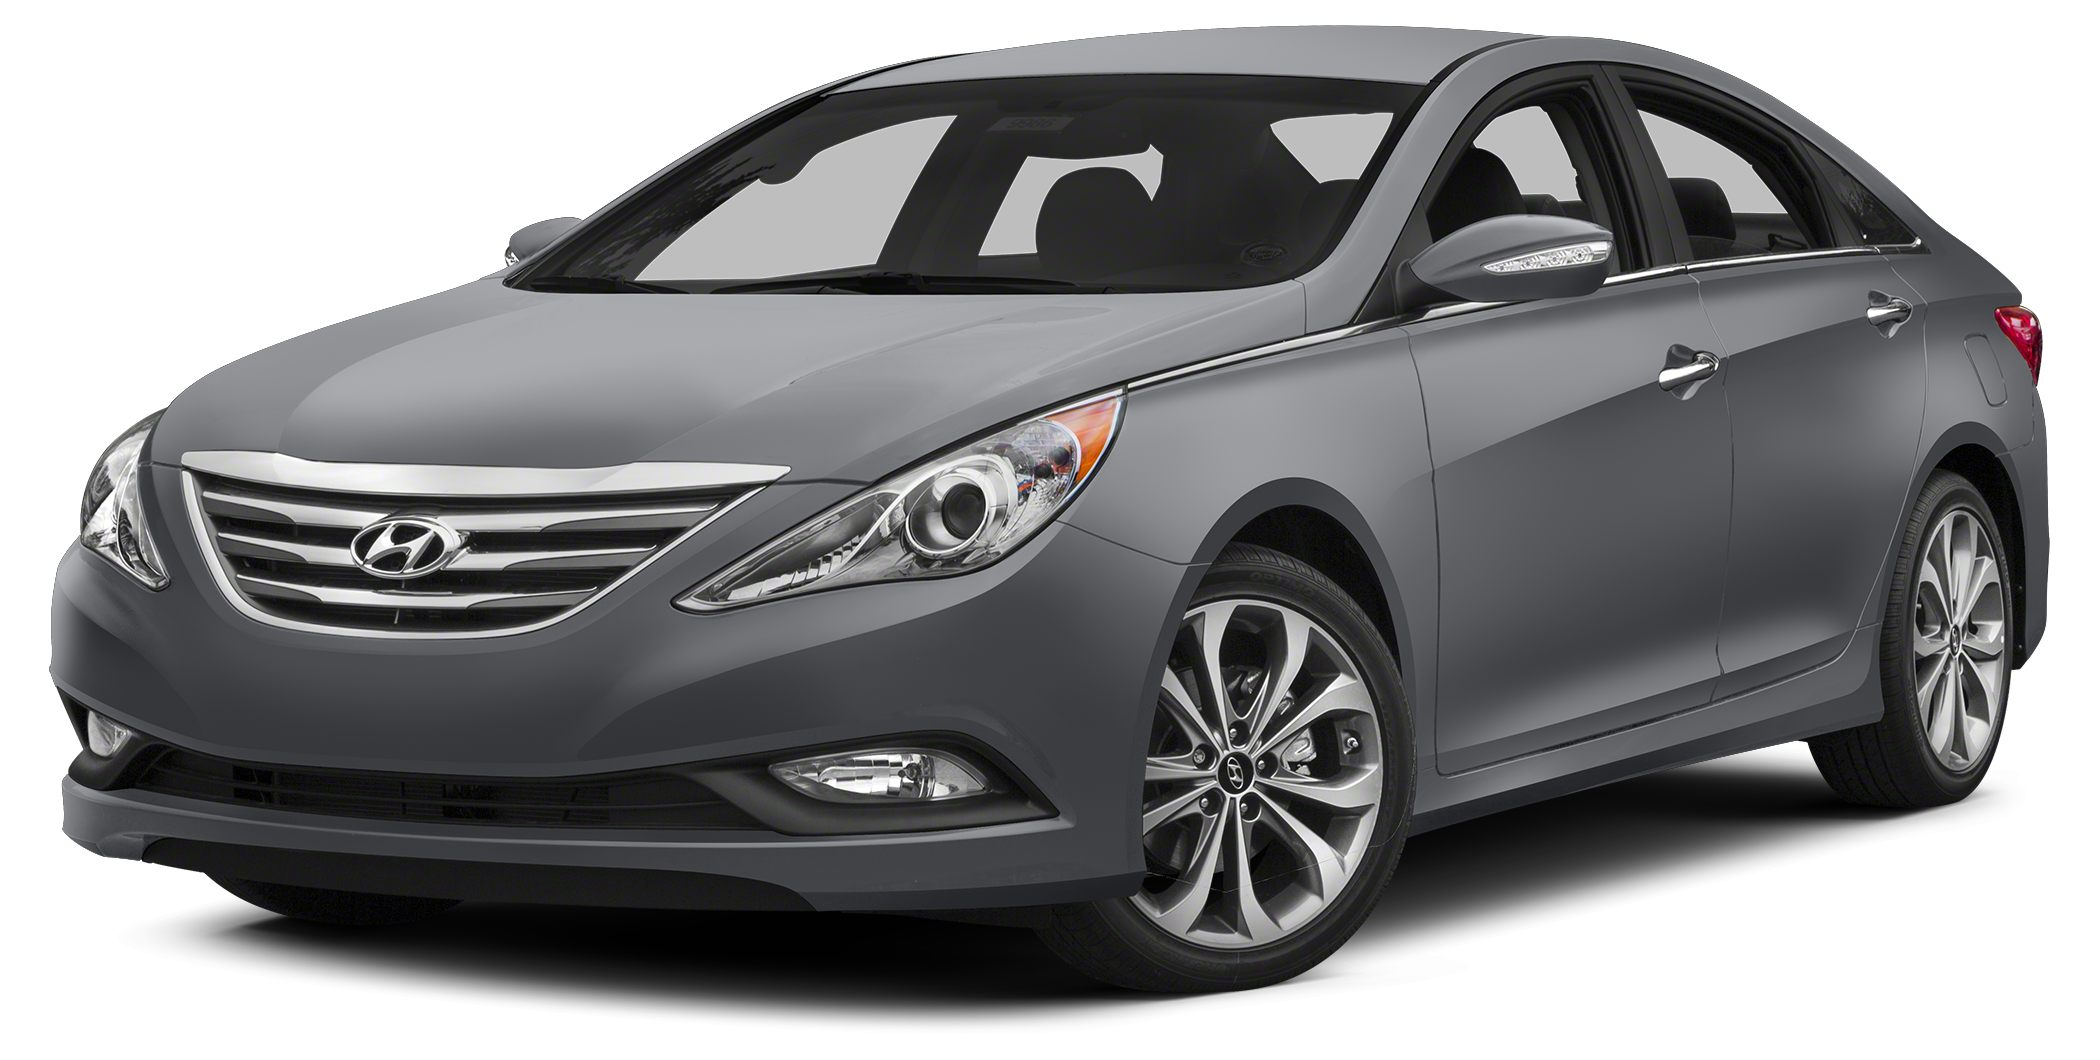 2014 Hyundai Sonata GLS Lifetime Engine Warranty at NO CHARGE on all pre-owned vehicles Courtesy